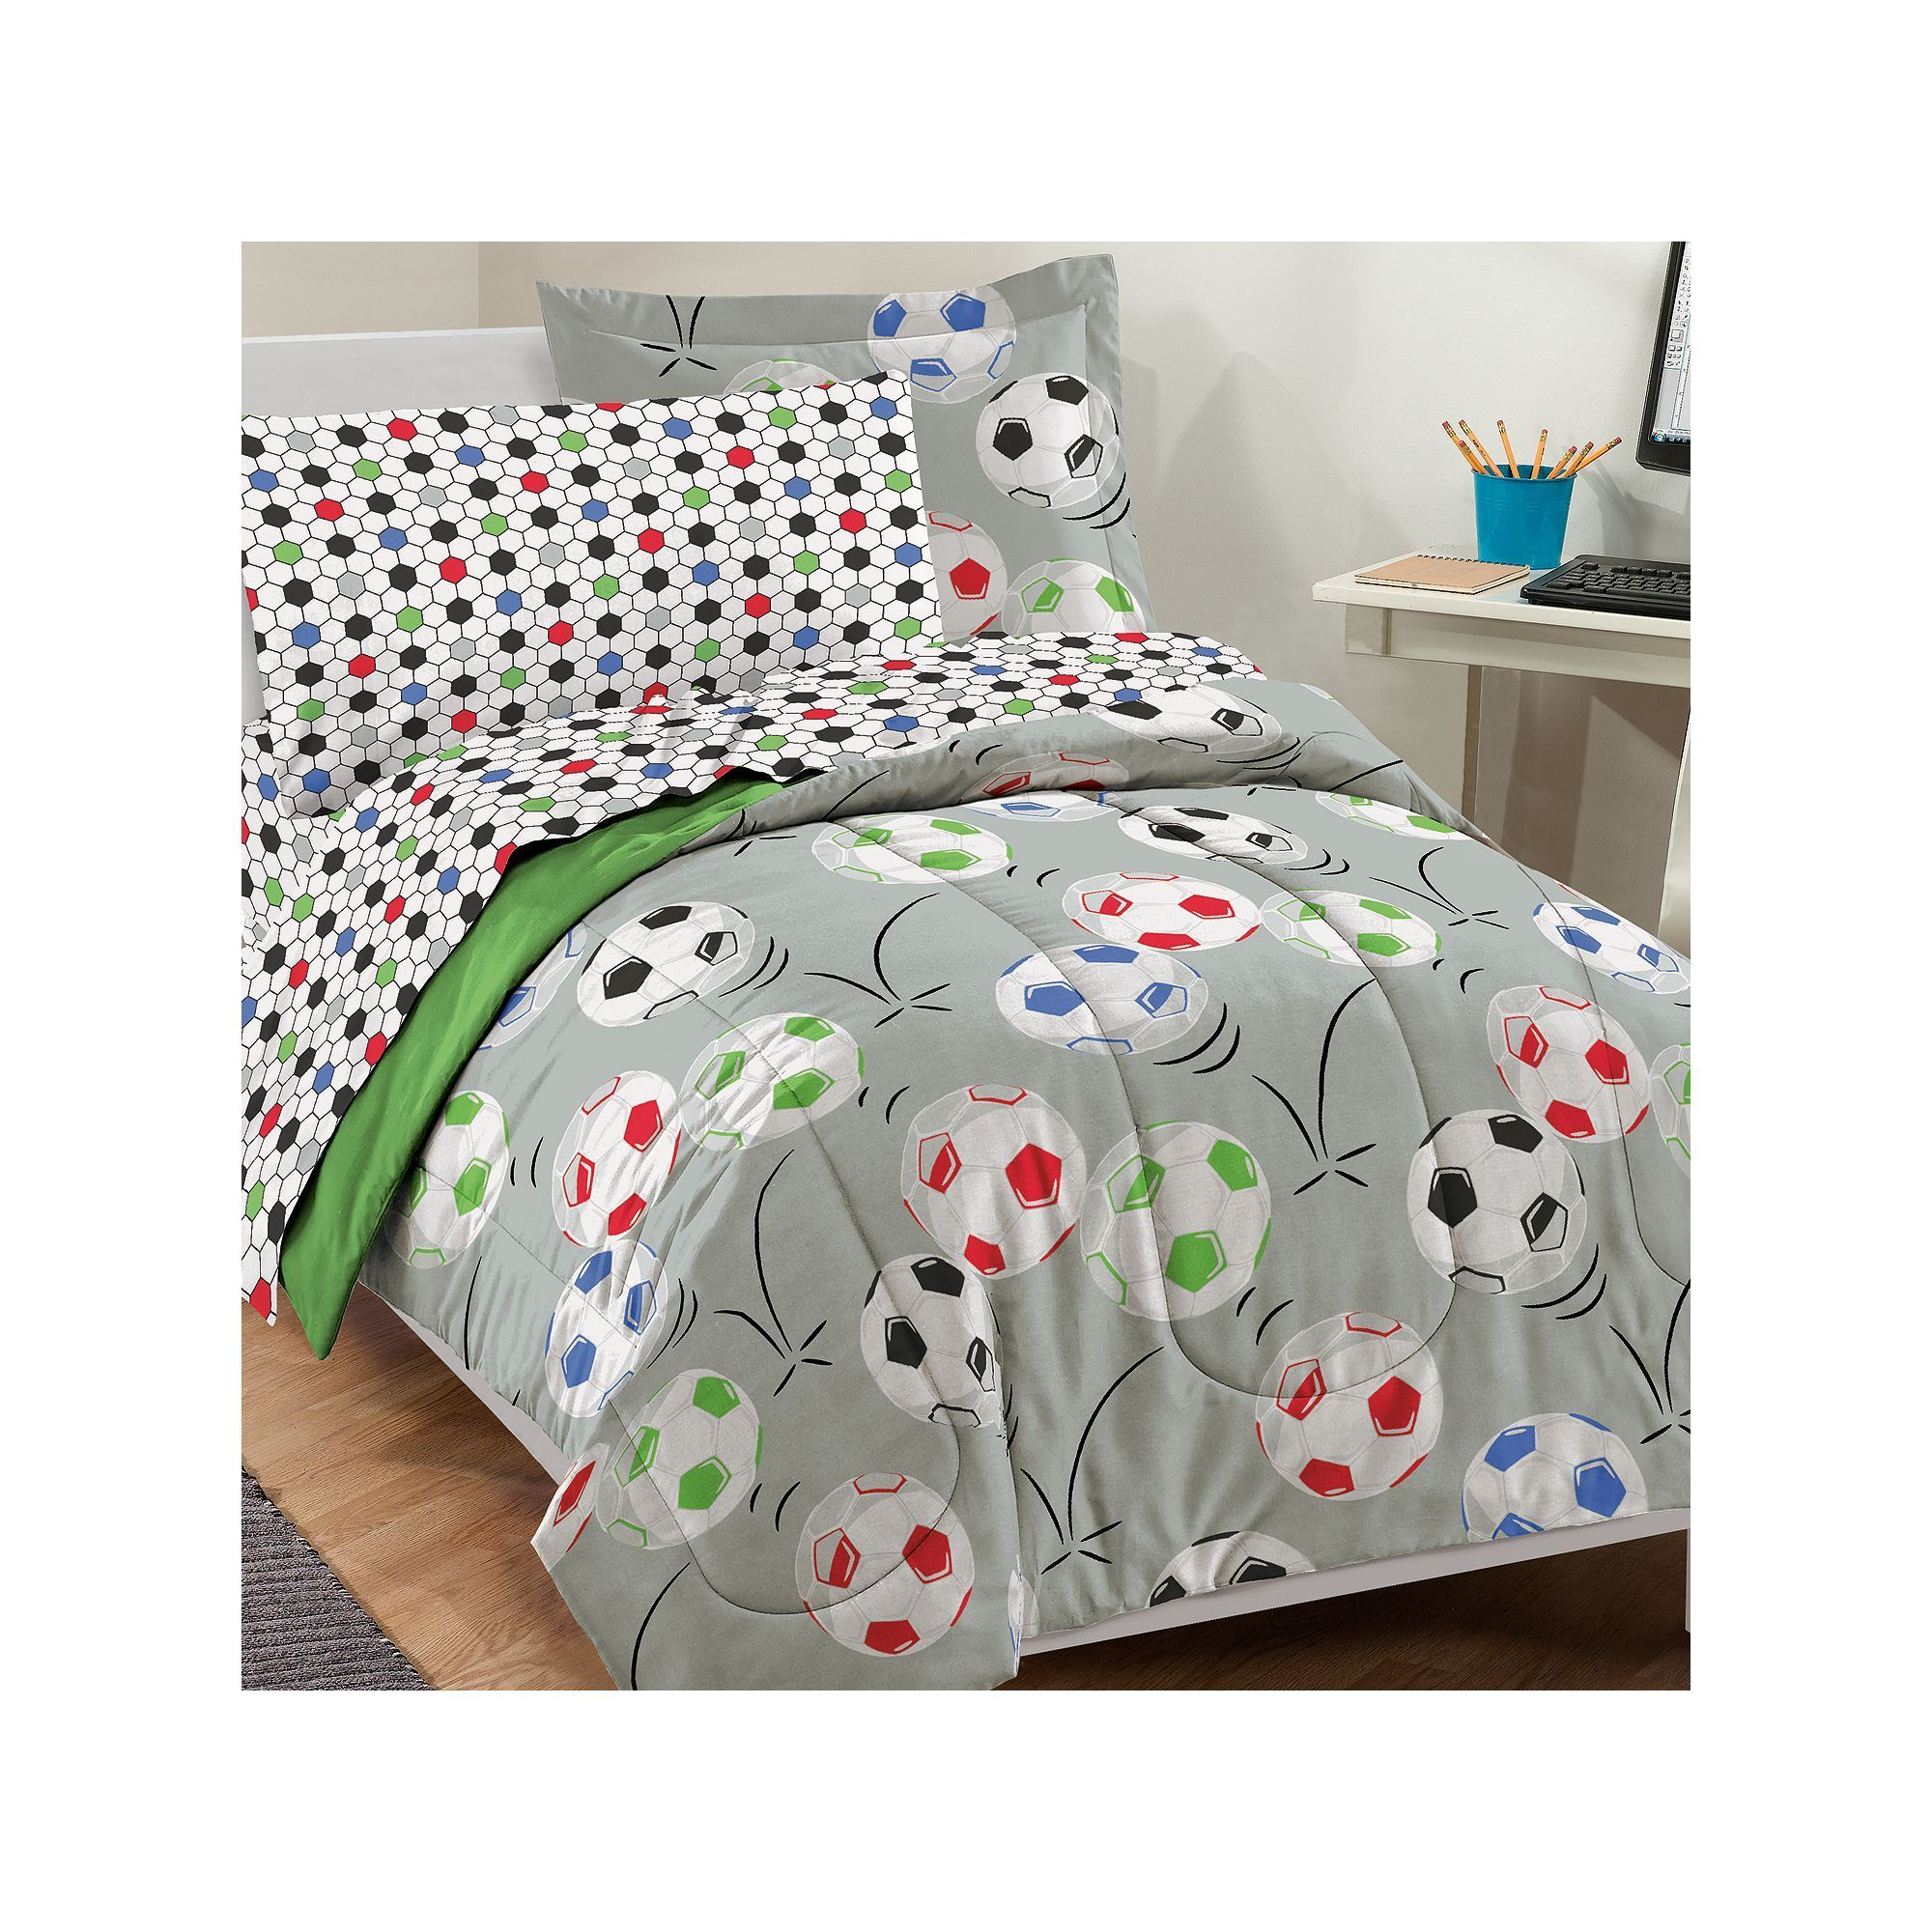 daisy bedding floral set in comforter bed designs green decoration bag synonym soccer twin queen girls ball a full christmas blue purple